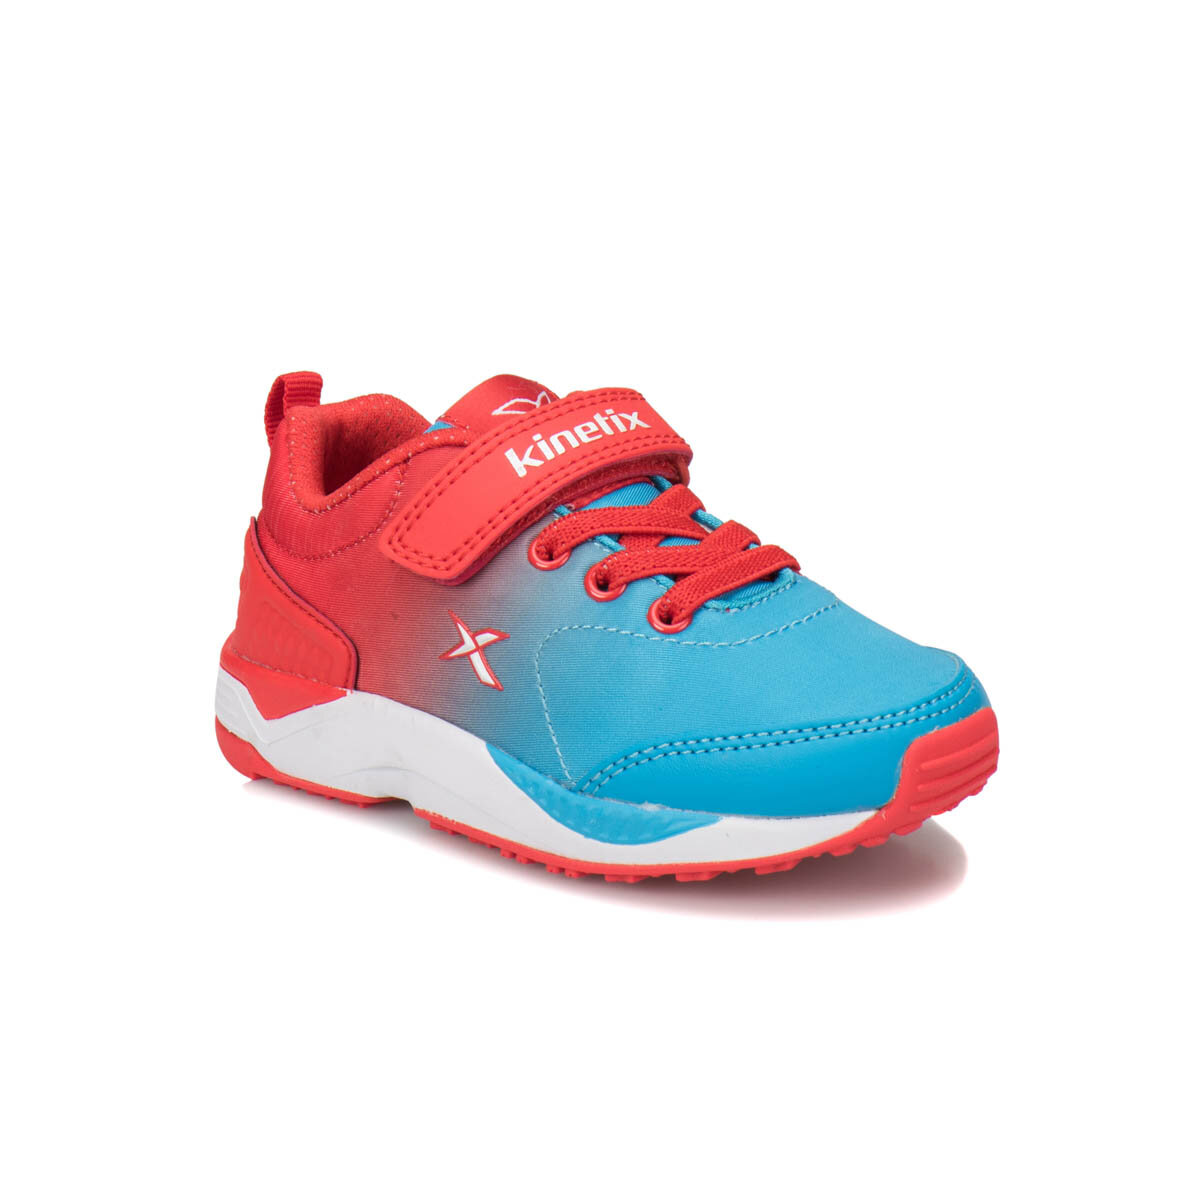 FLO INFLAT Red Male Child Sneaker Shoes KINETIX